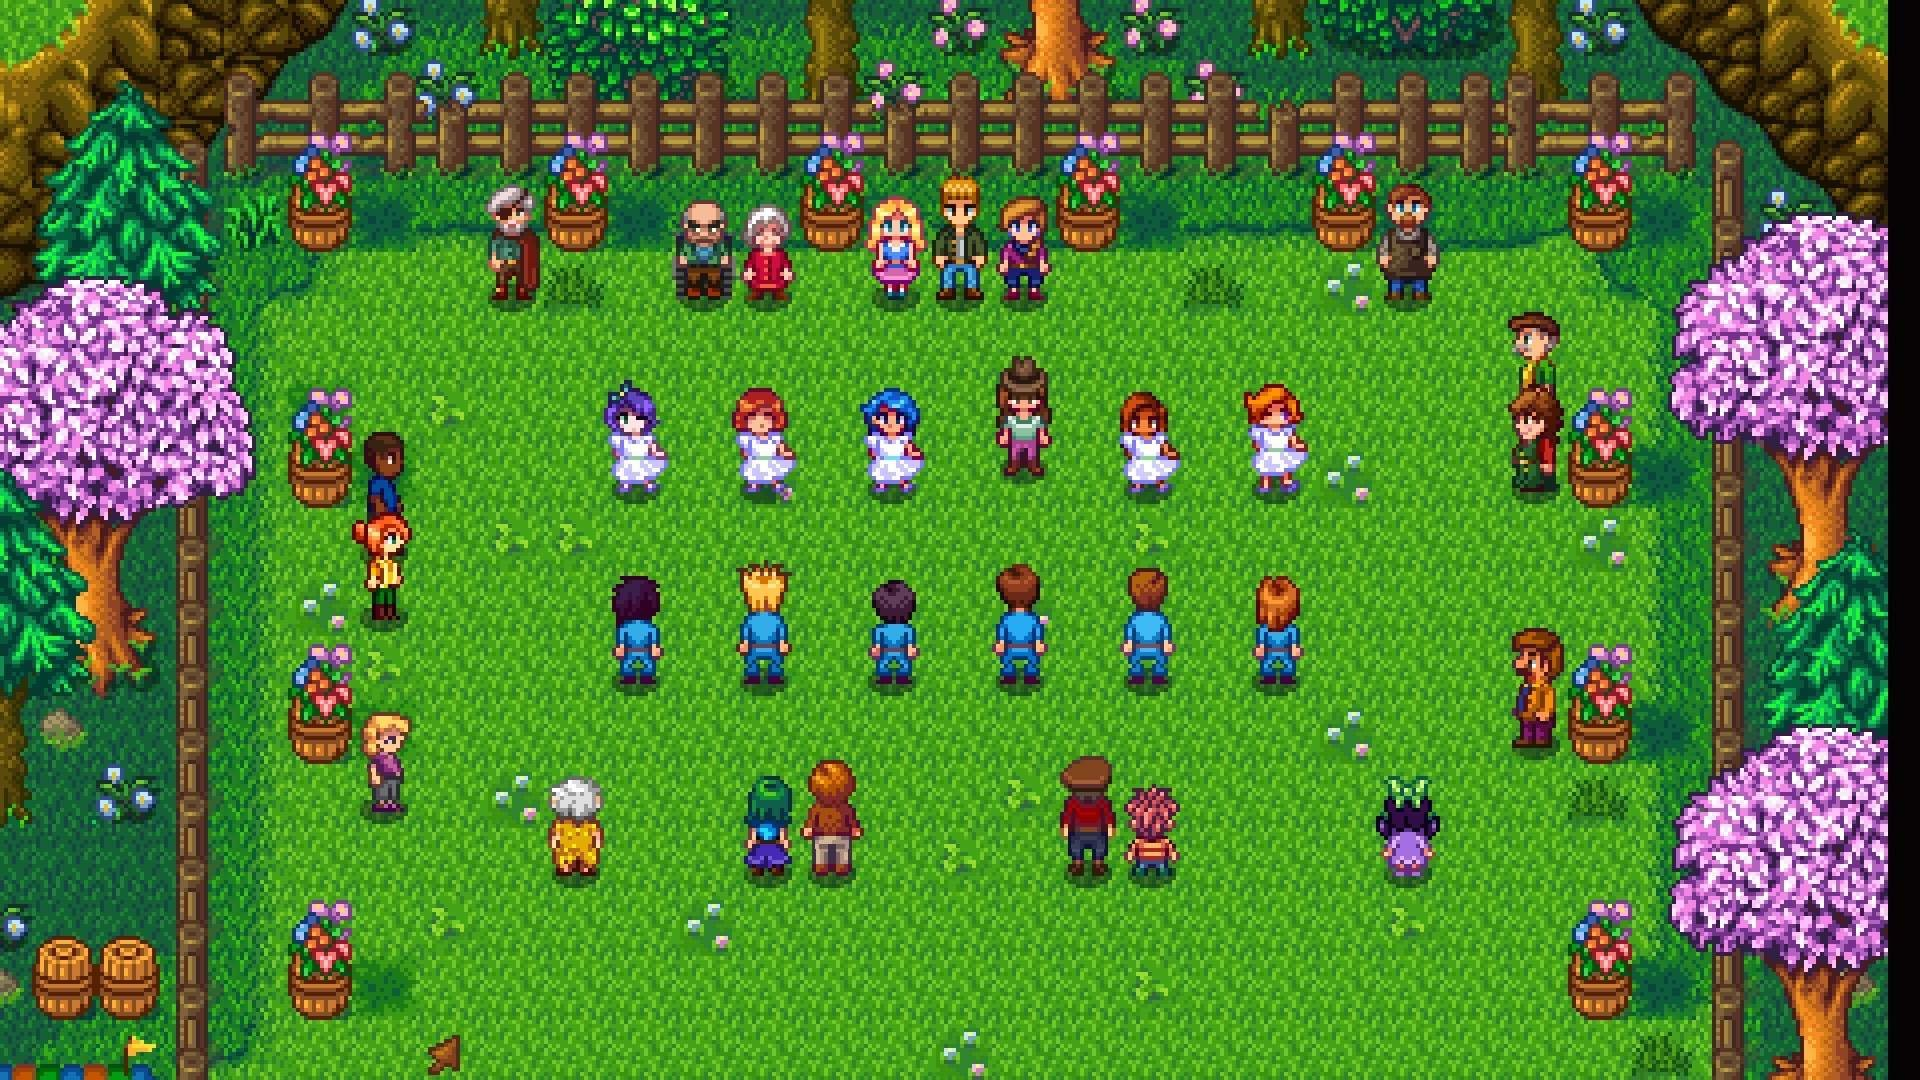 Stardew Valley Crop List Guide For Seed Makers Bean hotpot now grants max energy +30 and magnetism +32, instead of showing max energy +2 but. stardew valley crop list guide for